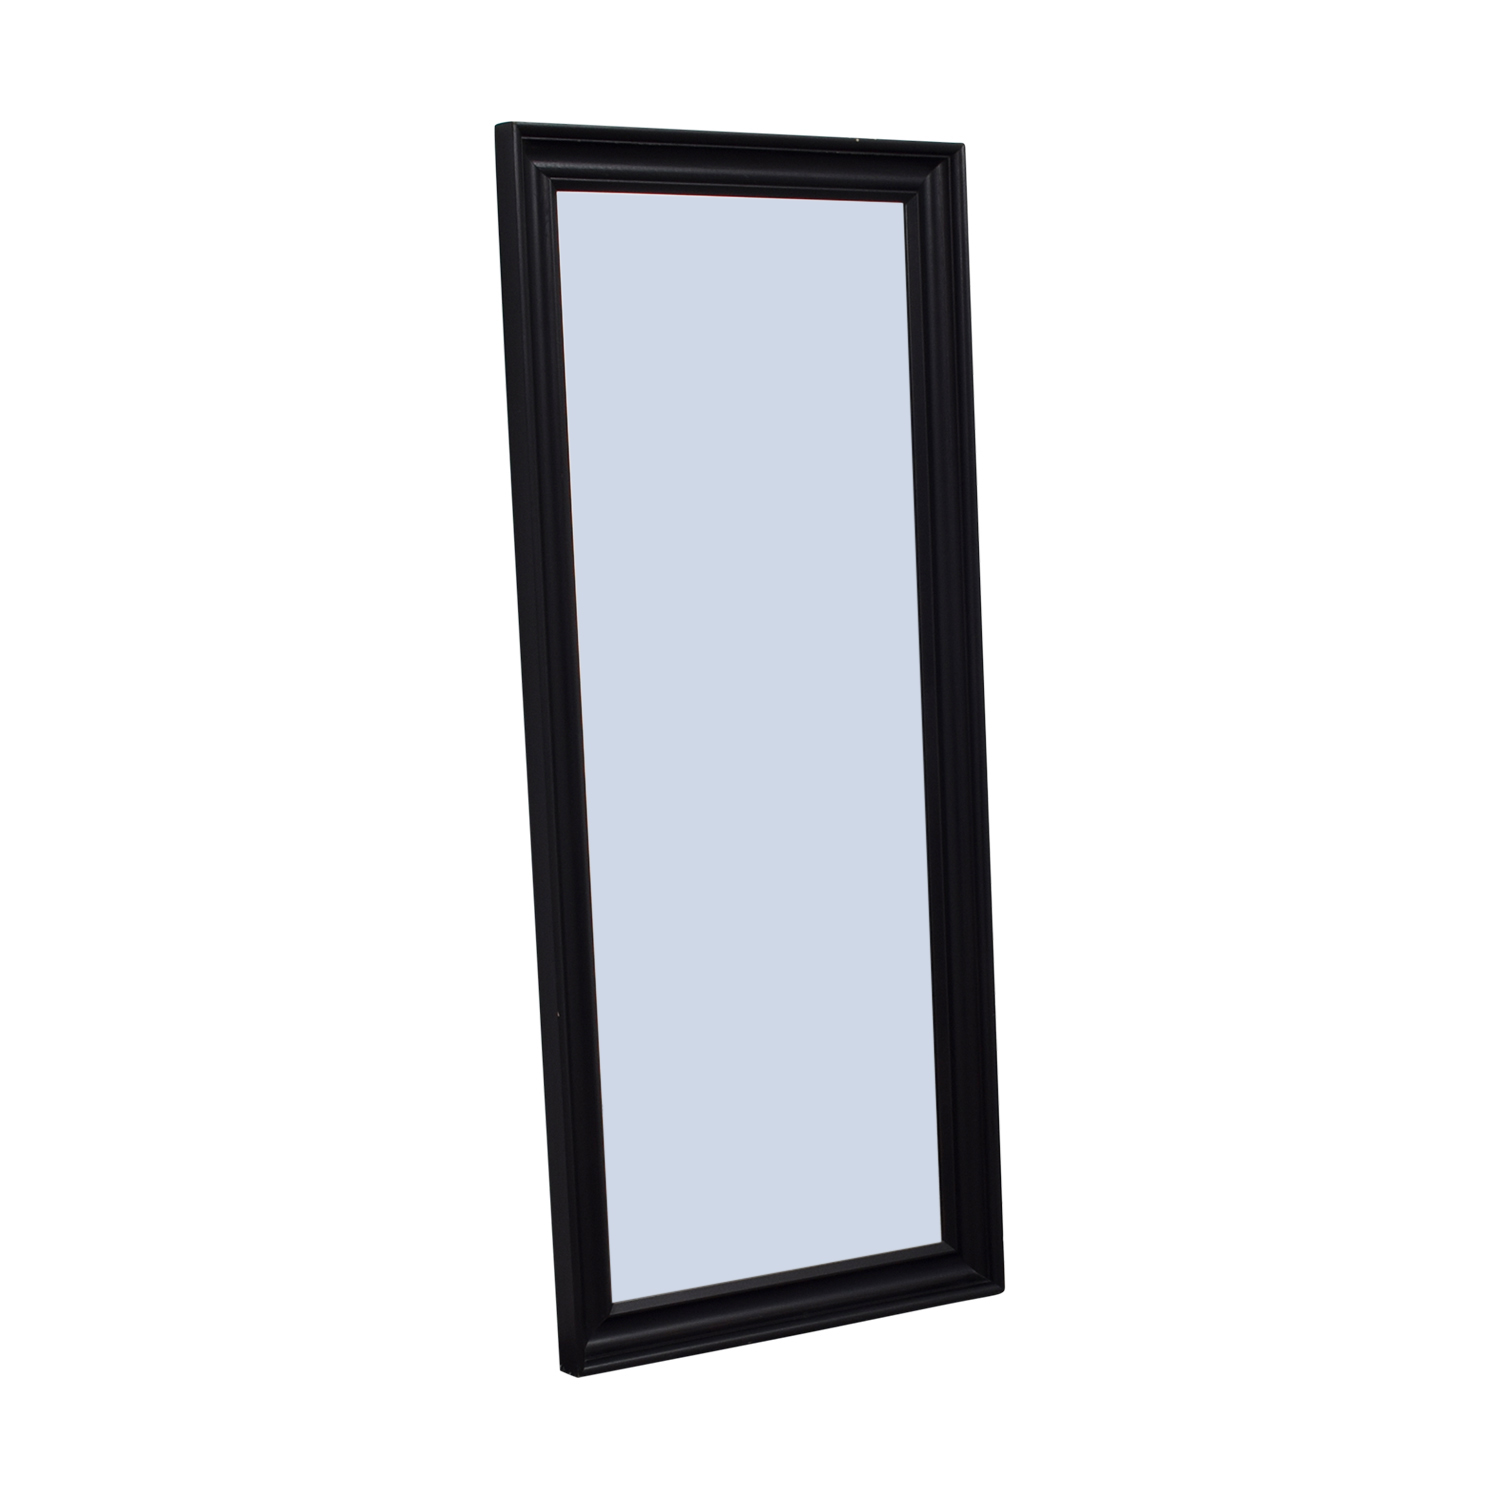 Crate & Barrel Crate & Barrel Black Wood Standing Mirror